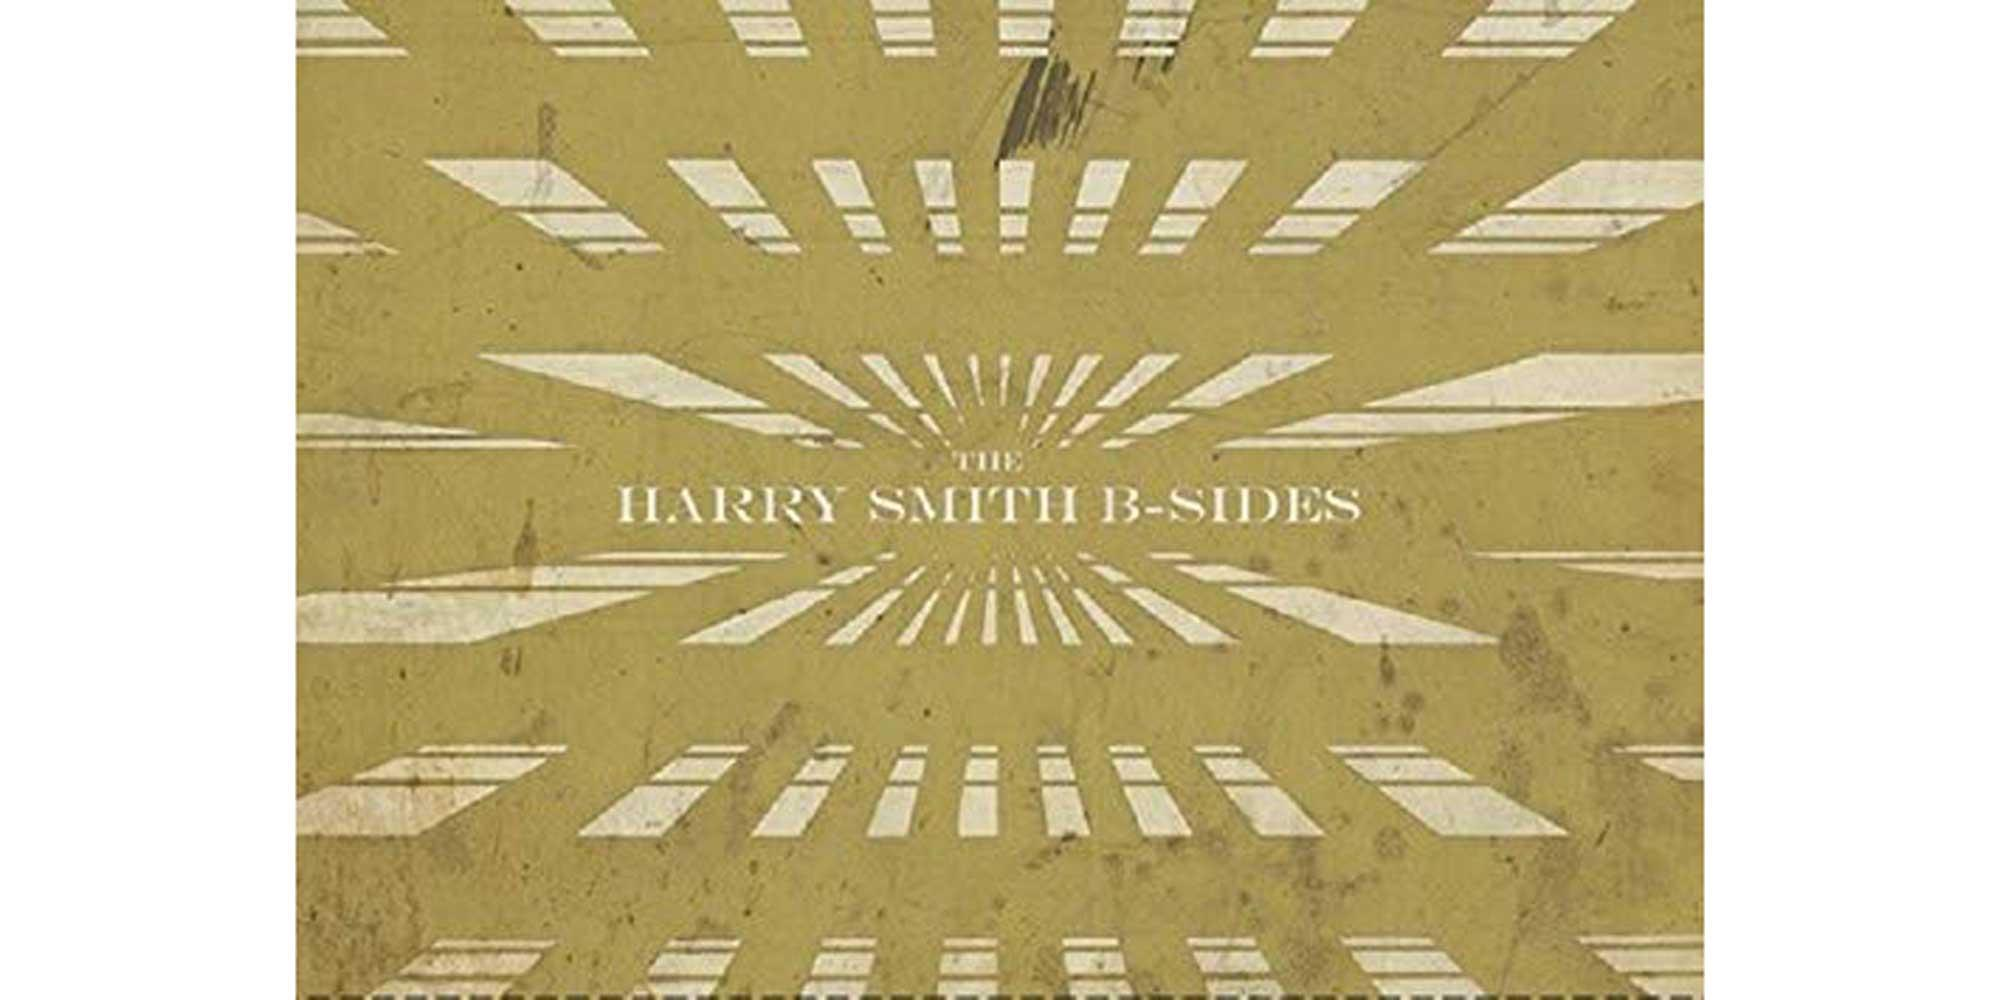 Various artists, The Harry Smith B-Sides